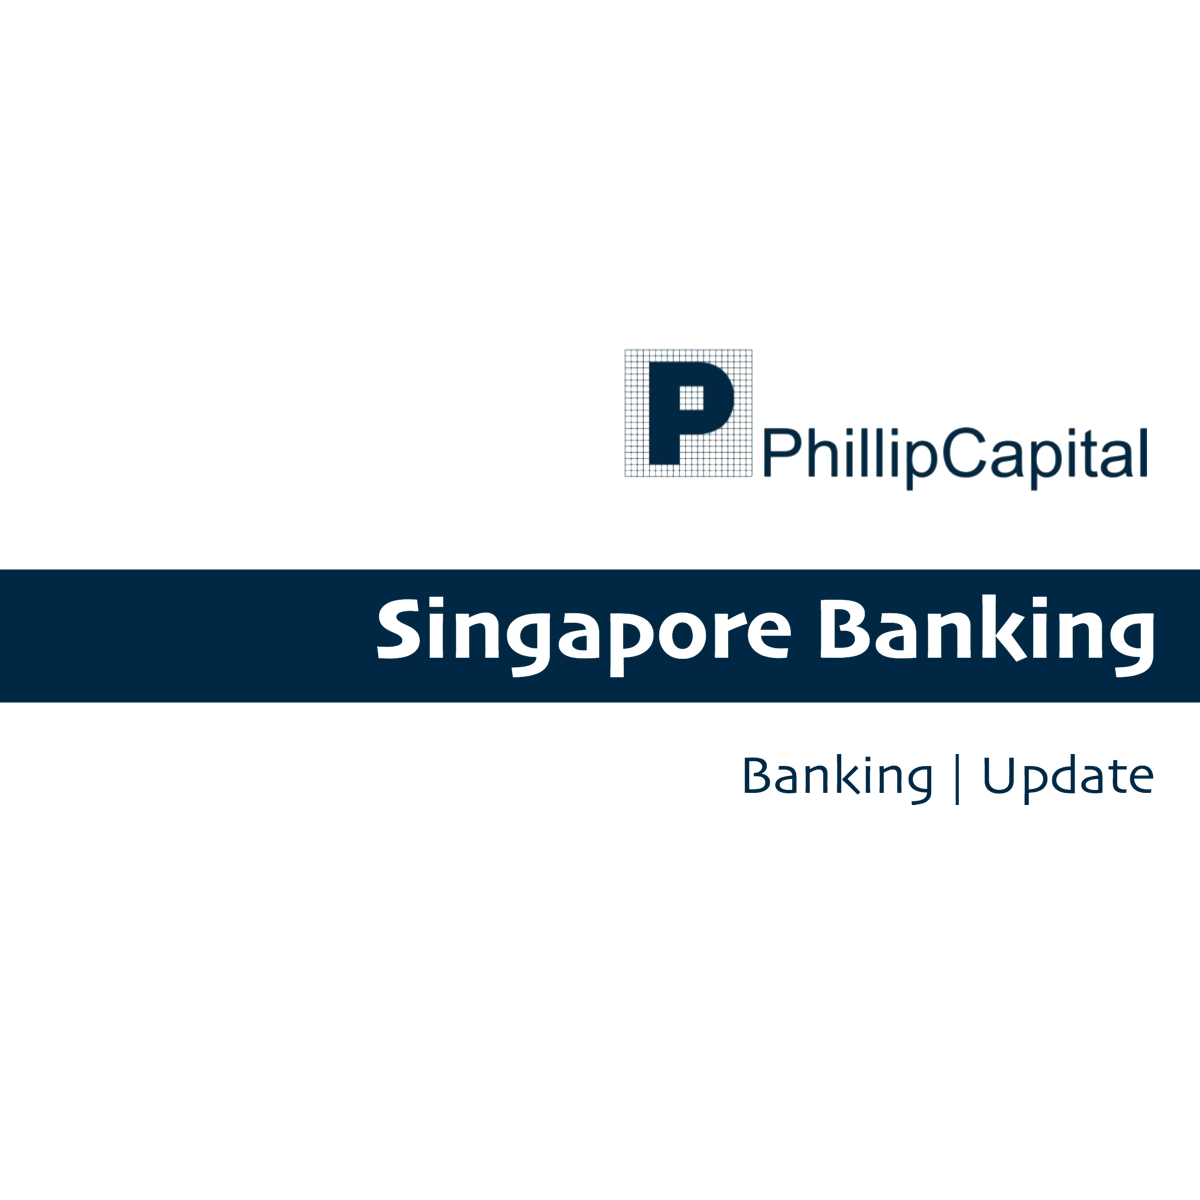 Singapore Banking Monthly - Phillip Securities 2018-01-10: 2017 Ended With A Strong Performance In December